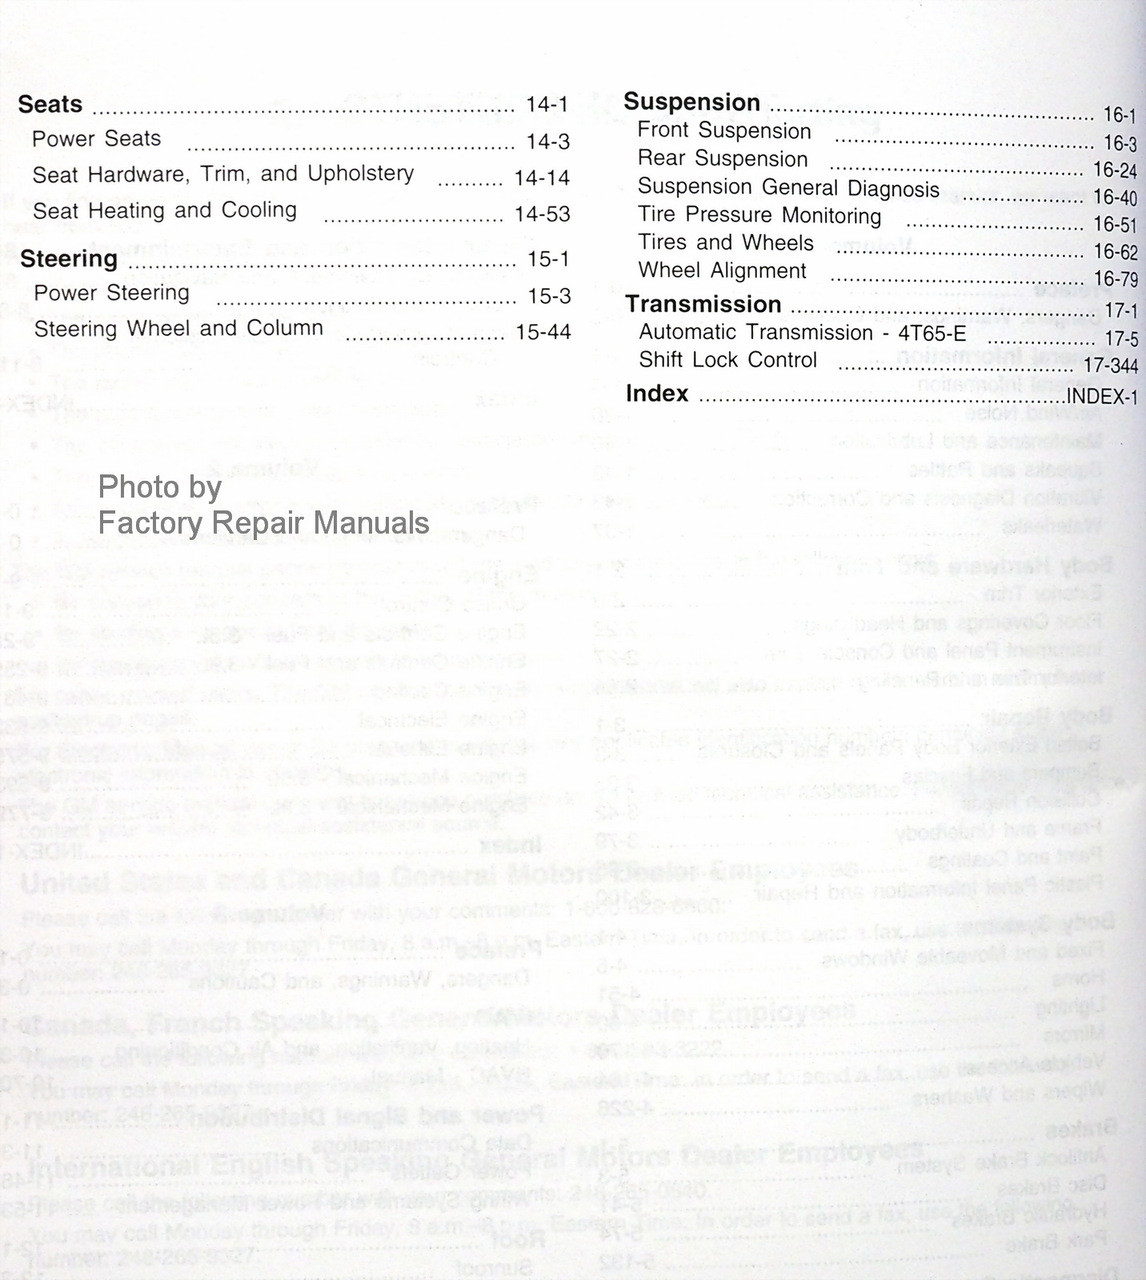 2011 chevrolet impala owners manual